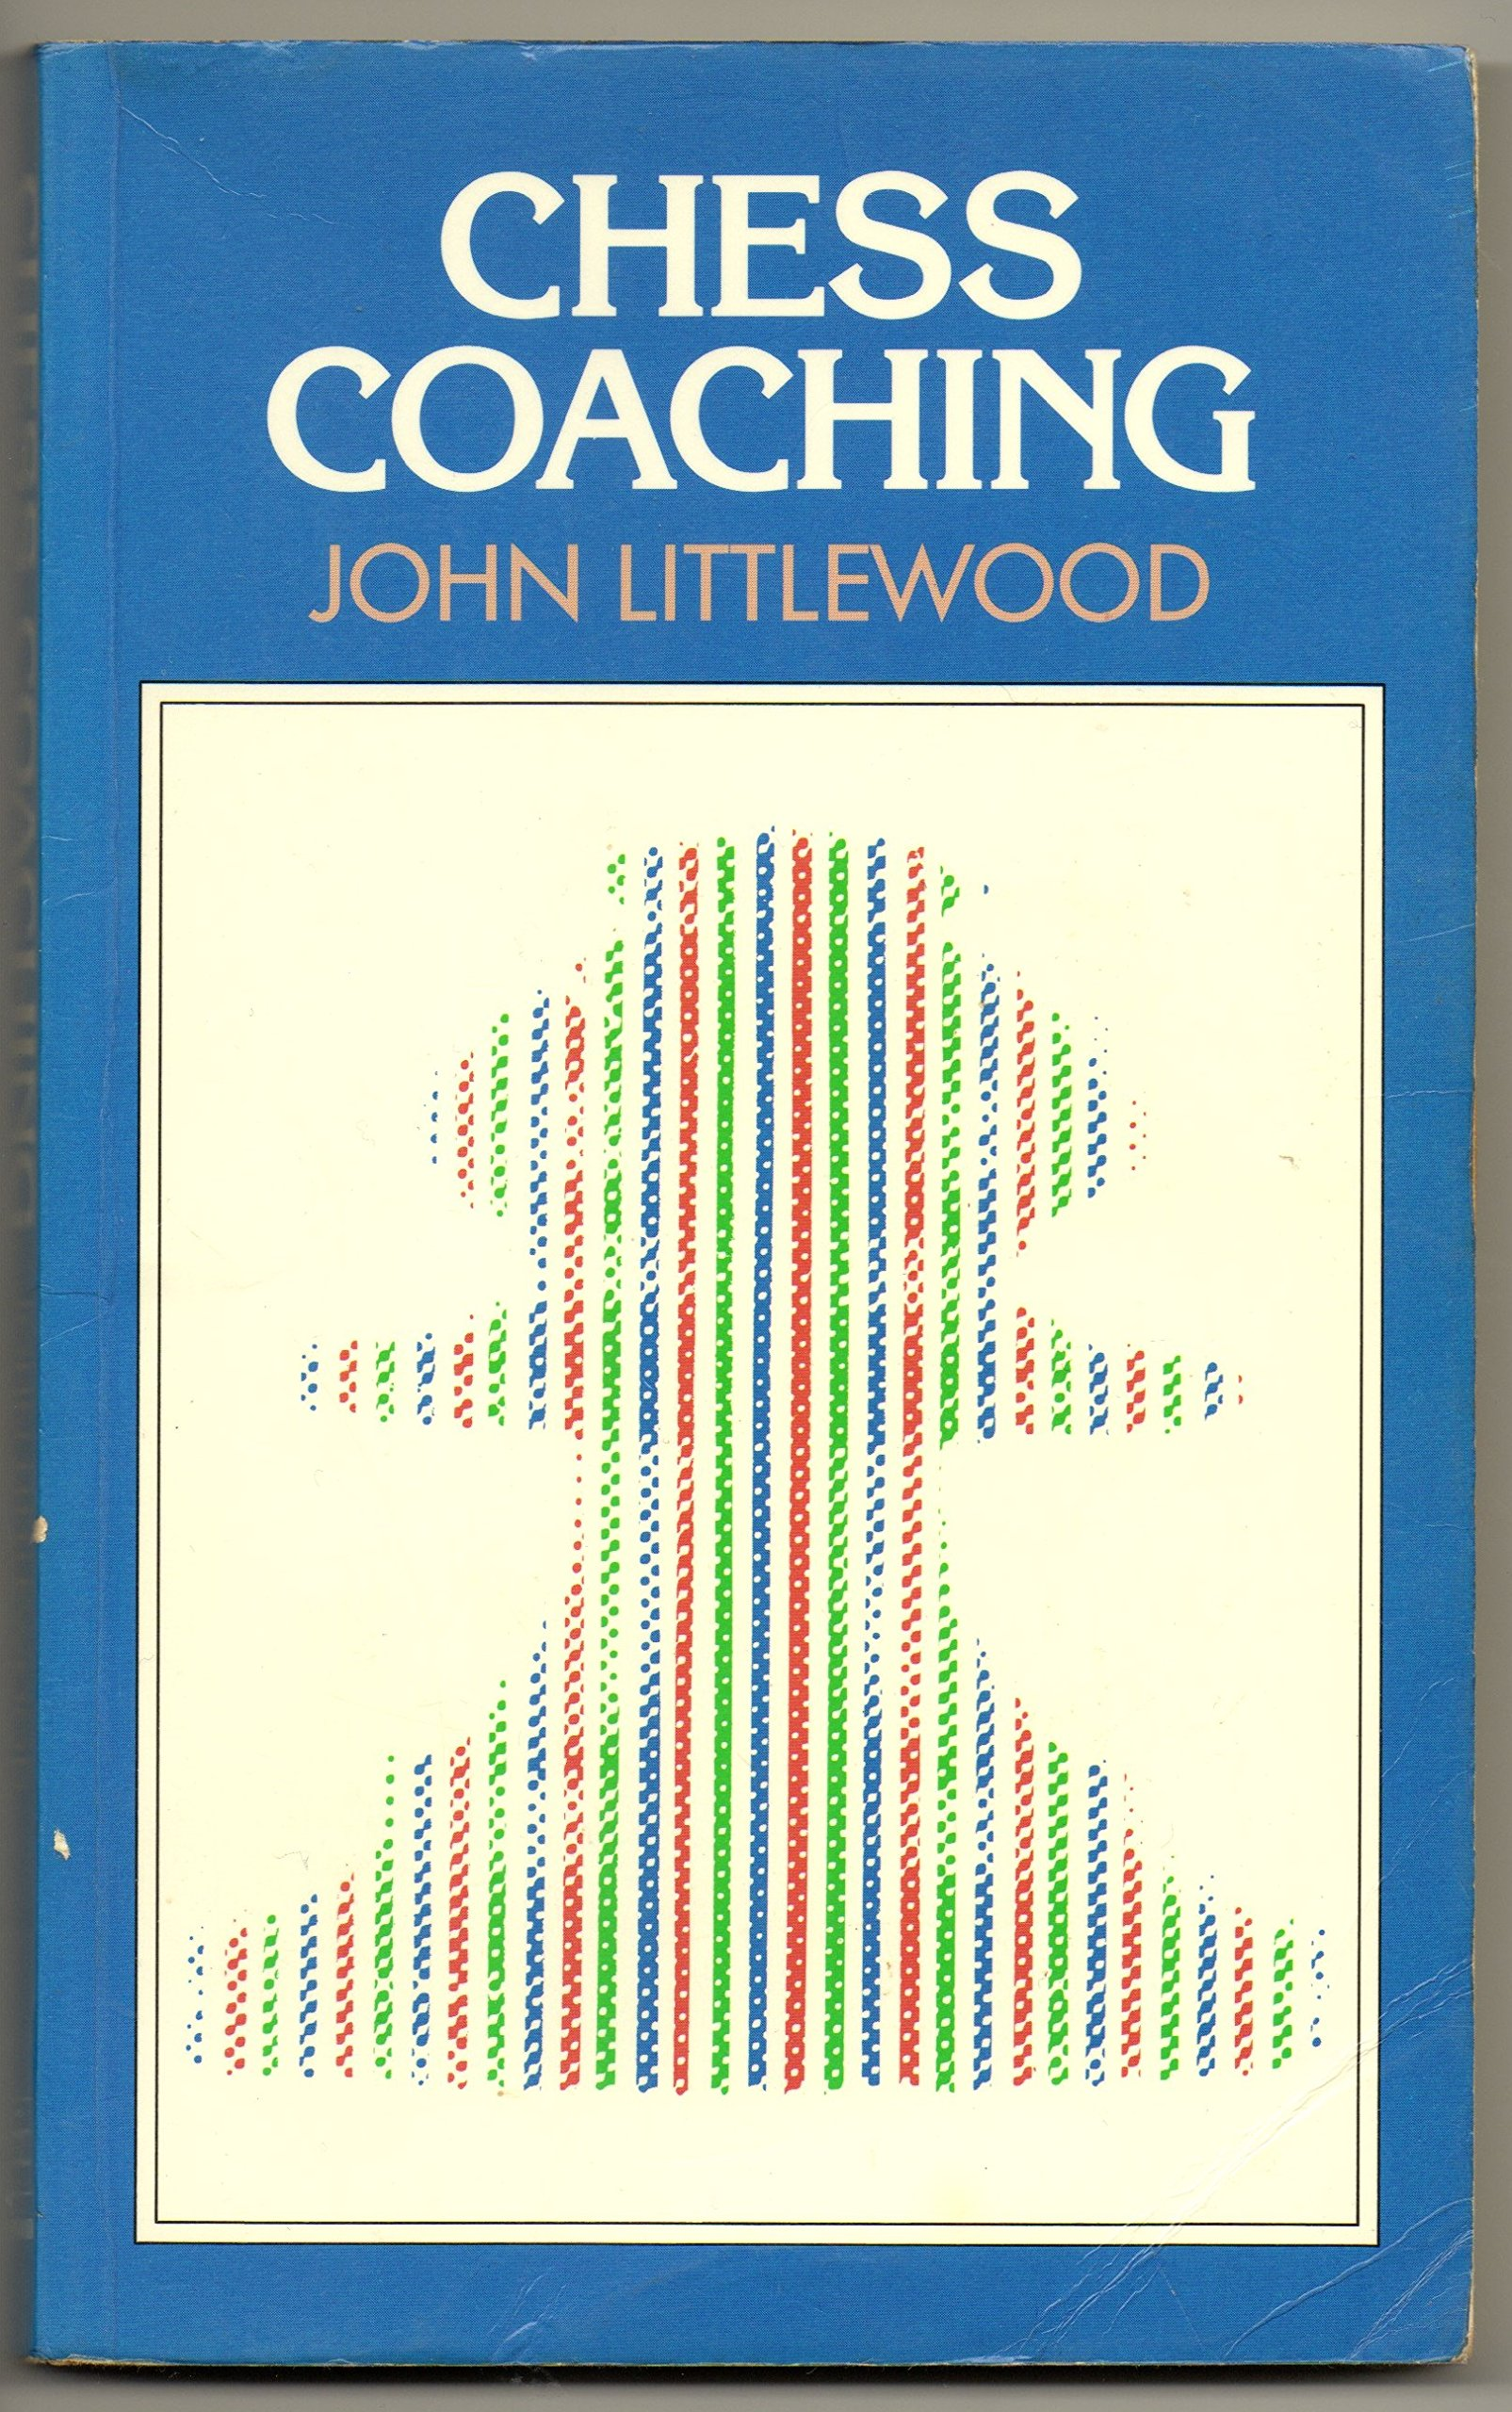 Chess Coaching by John Littlewood, The Crowood Press, 1991